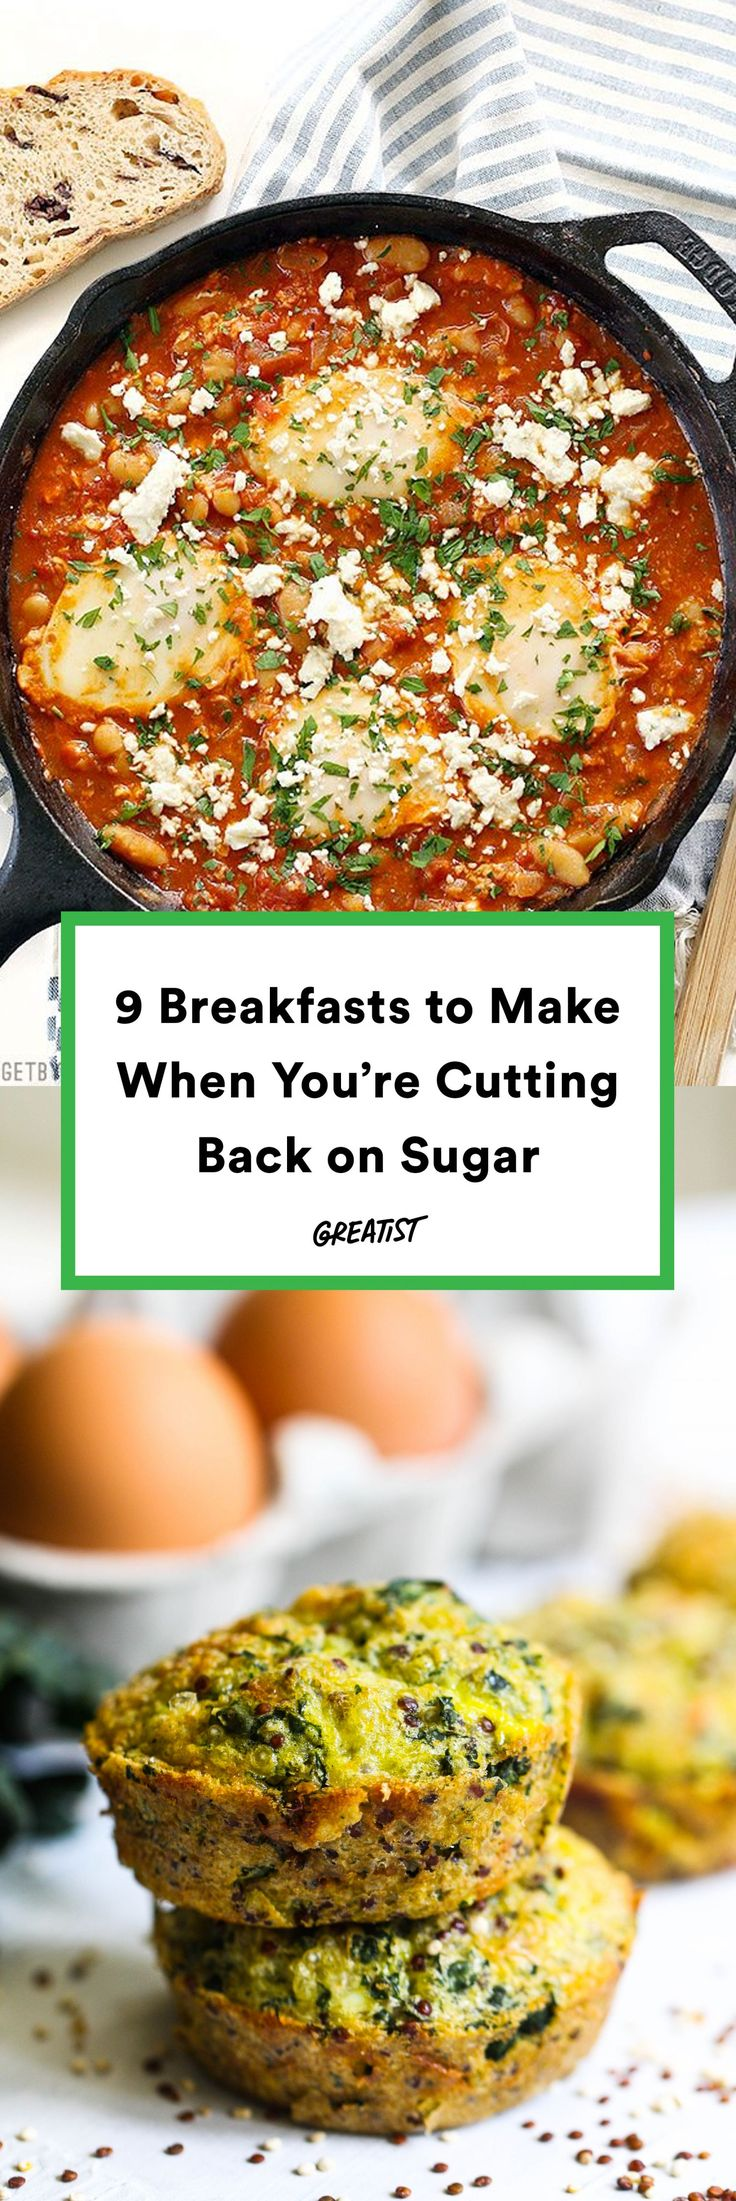 Because starting your day on the right foot can do wonders for your daily goals. #greatist https://greatist.com/eat/breakfast-recipes-to-make-when-you-cut-back-on-sugar